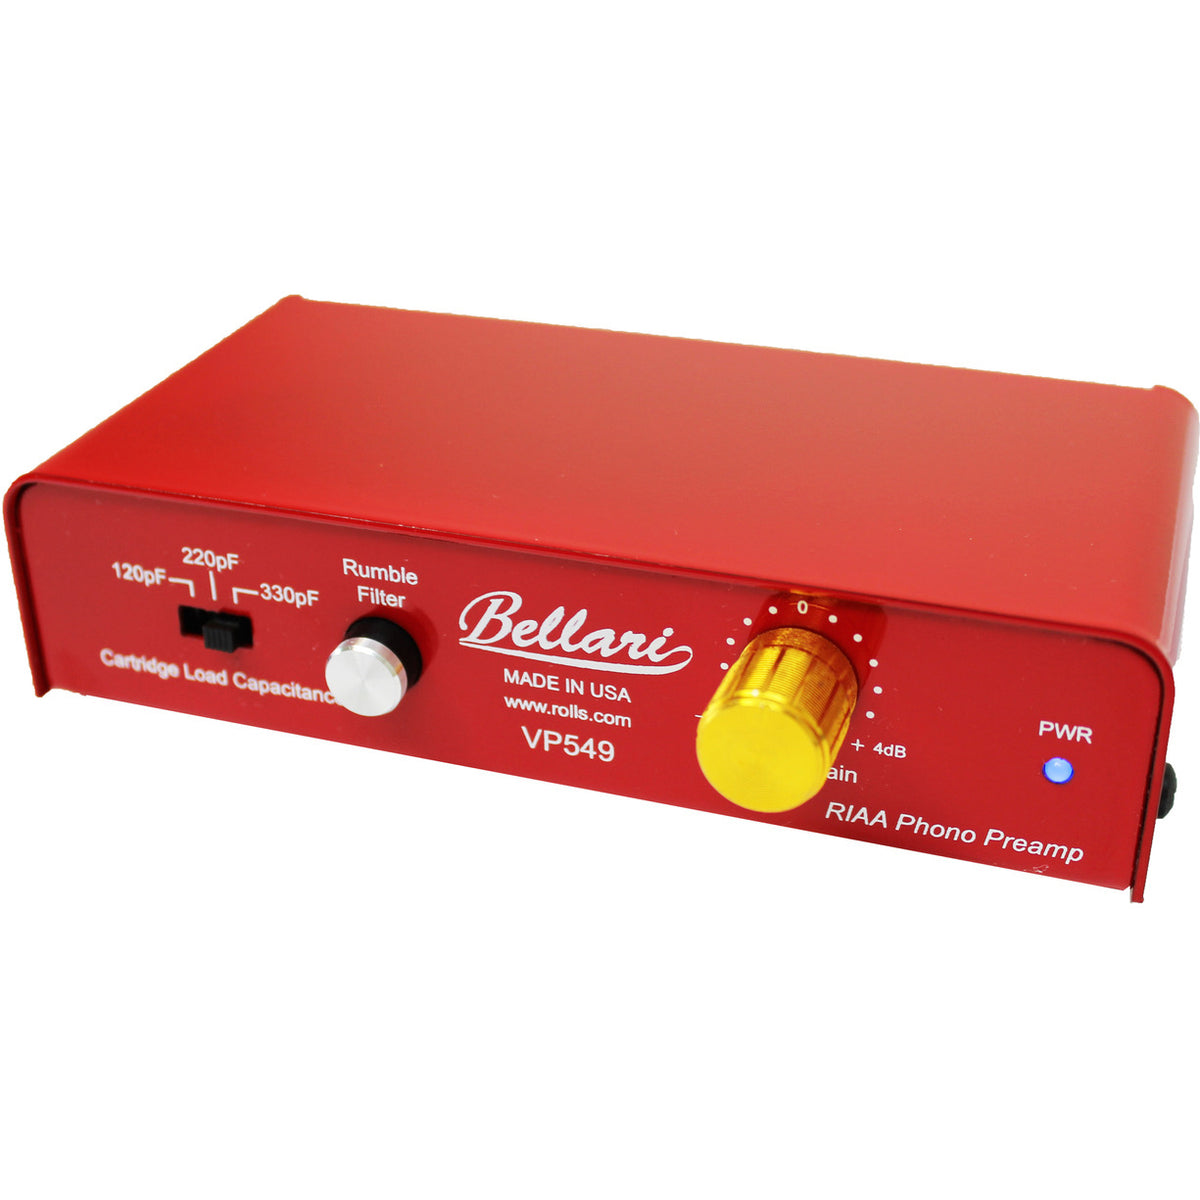 Bellari: VP549 RIAA Phono Preamplifier